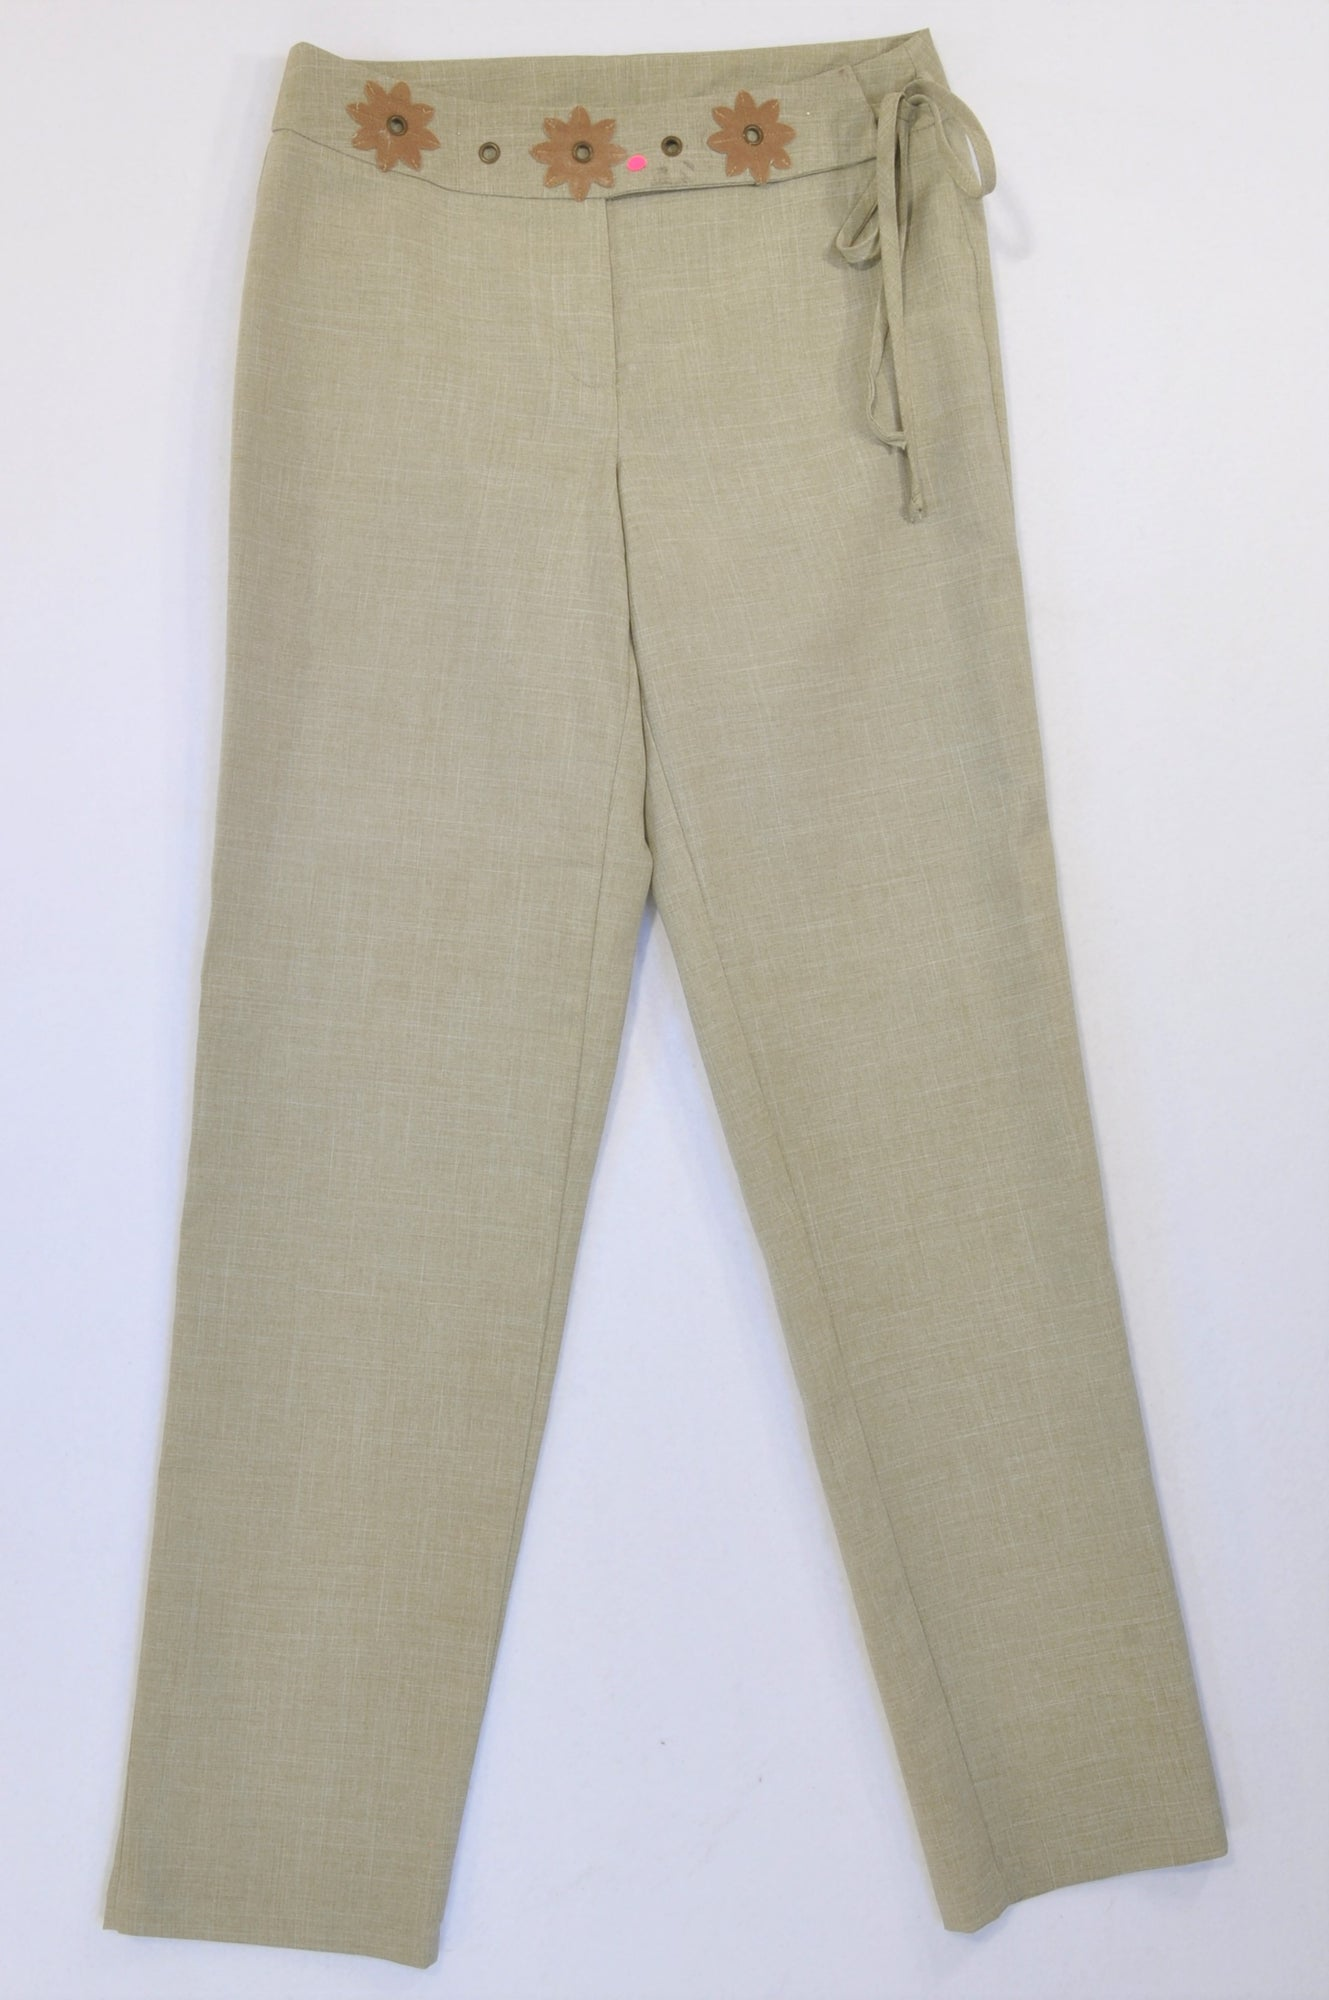 Free Clothing Olive Lightweight Flower Belted Office Pants Women Size 10